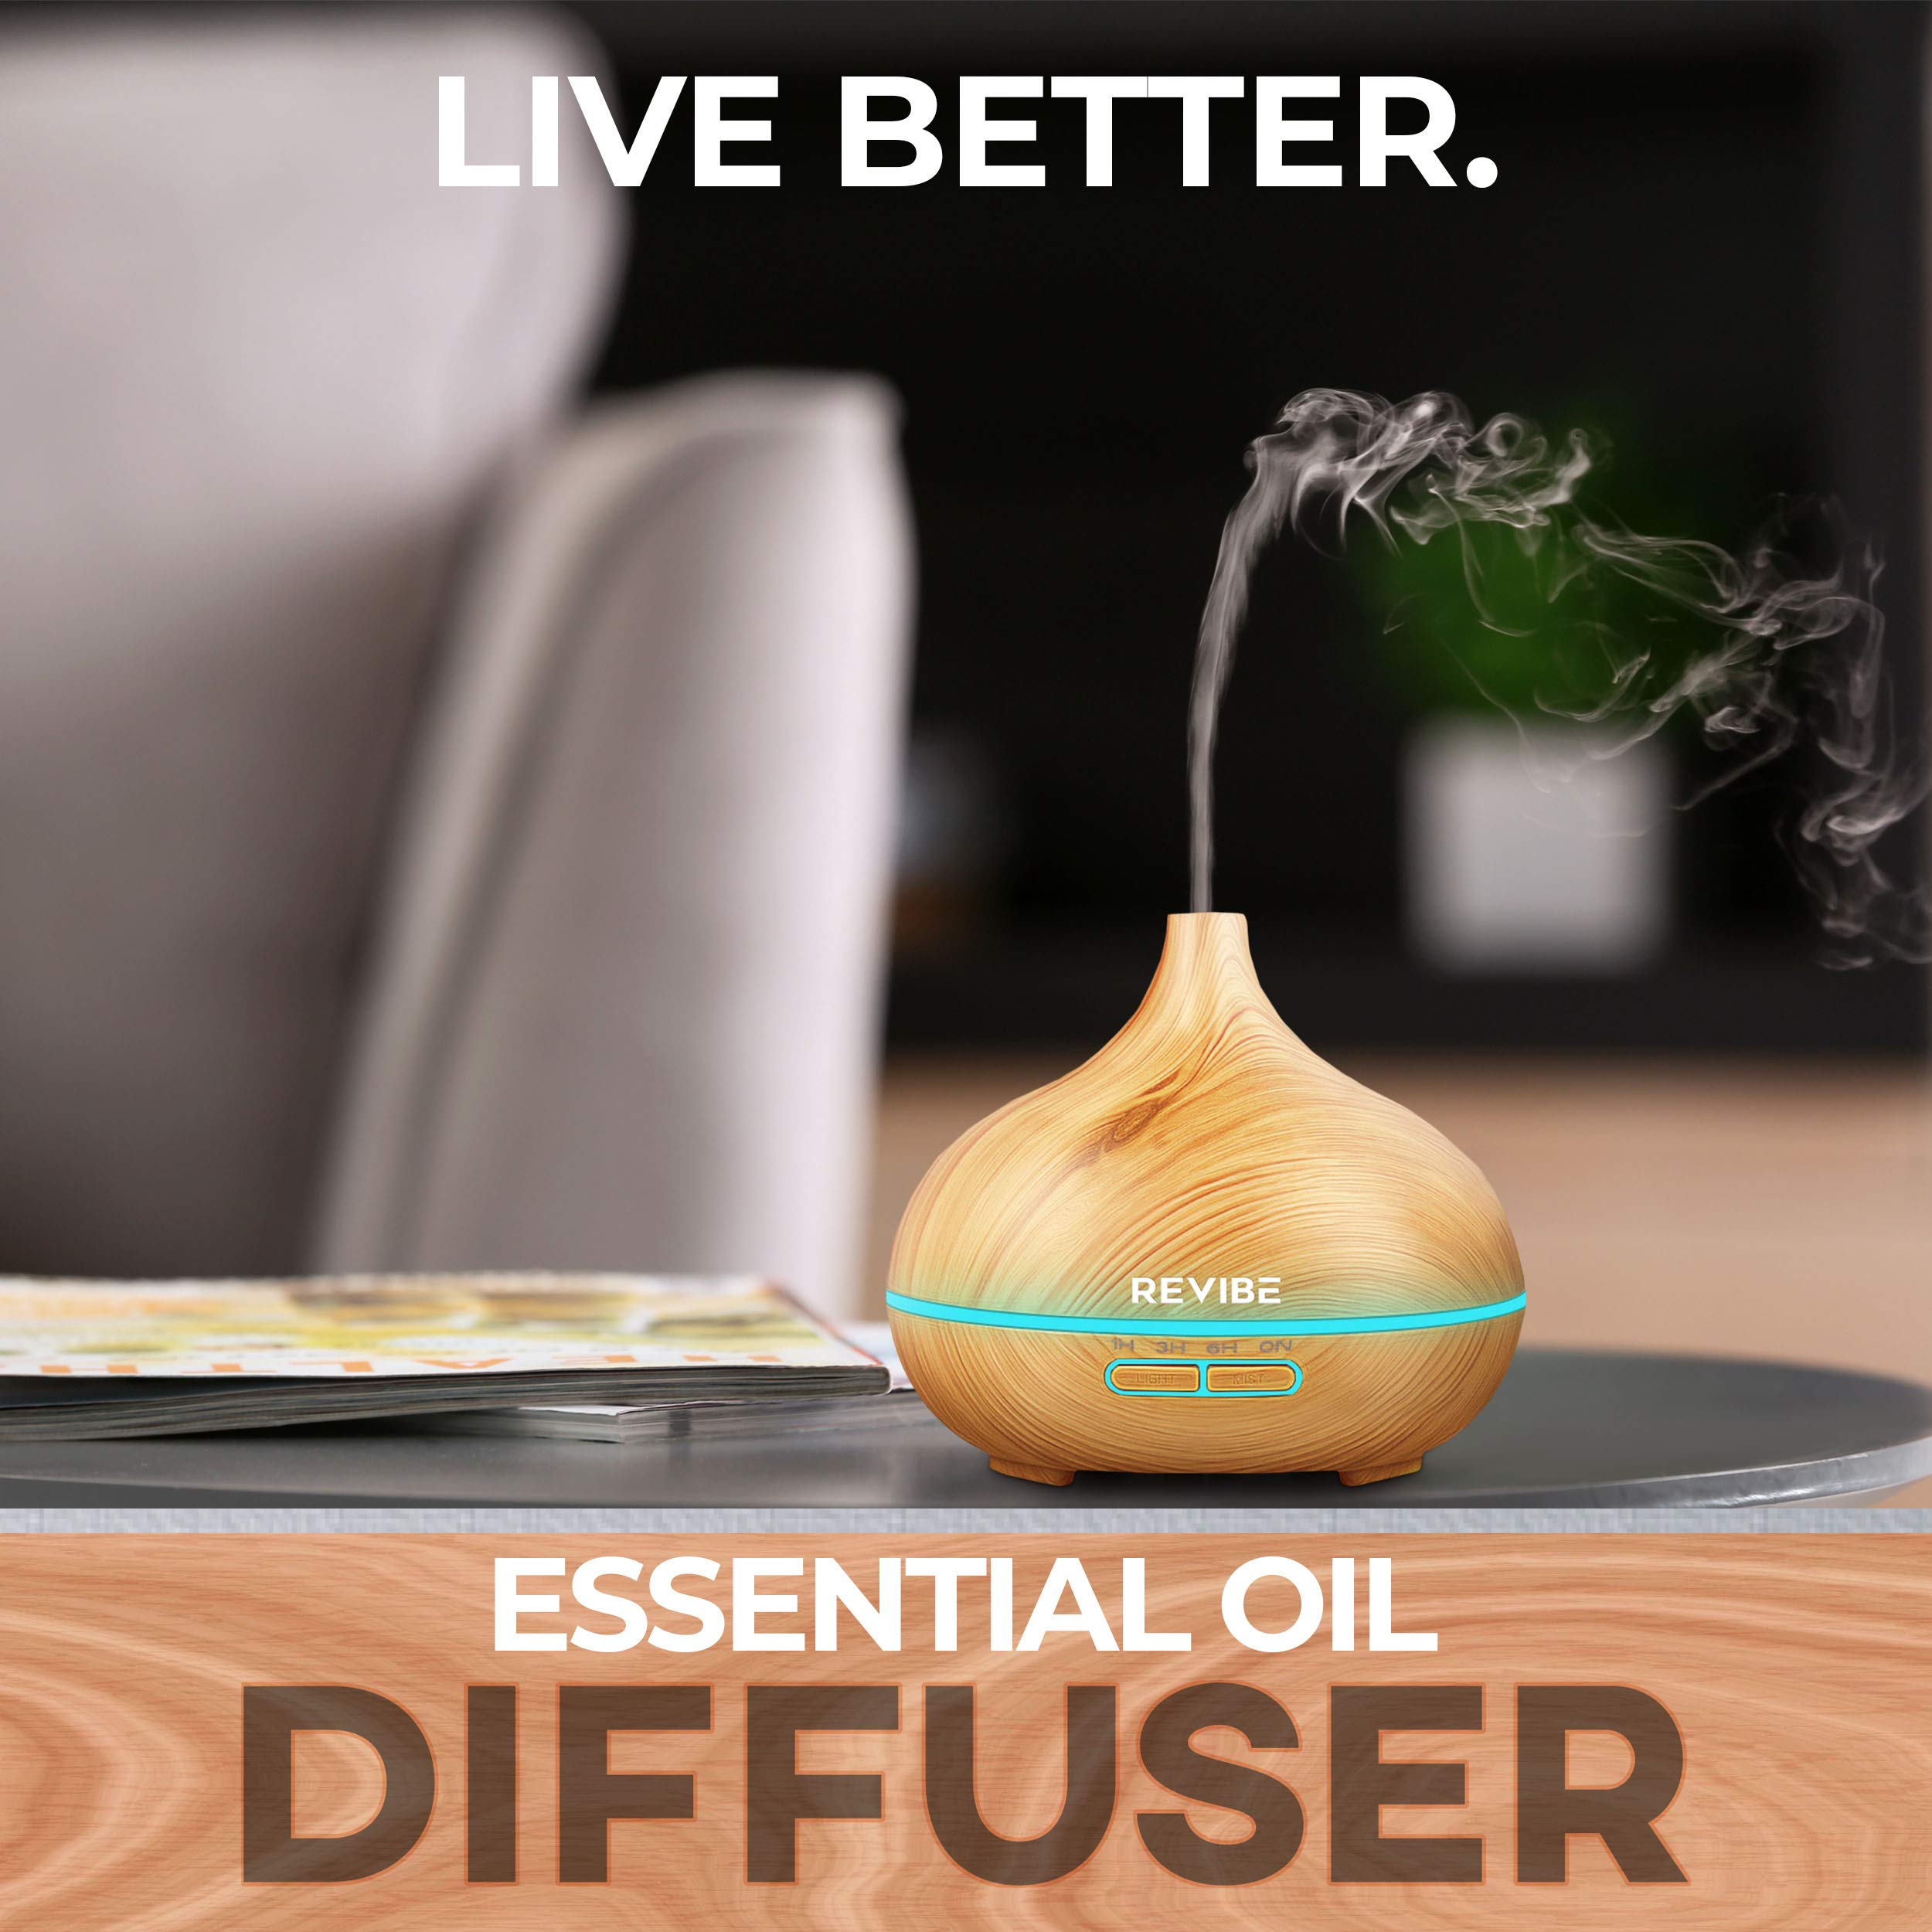 Ultrasonic Humidifier Night Light Diffuser - Create a Glorious Aroma throughout your Home and Experience the Benefits of Aromatherapy by Revibe (Image #2)